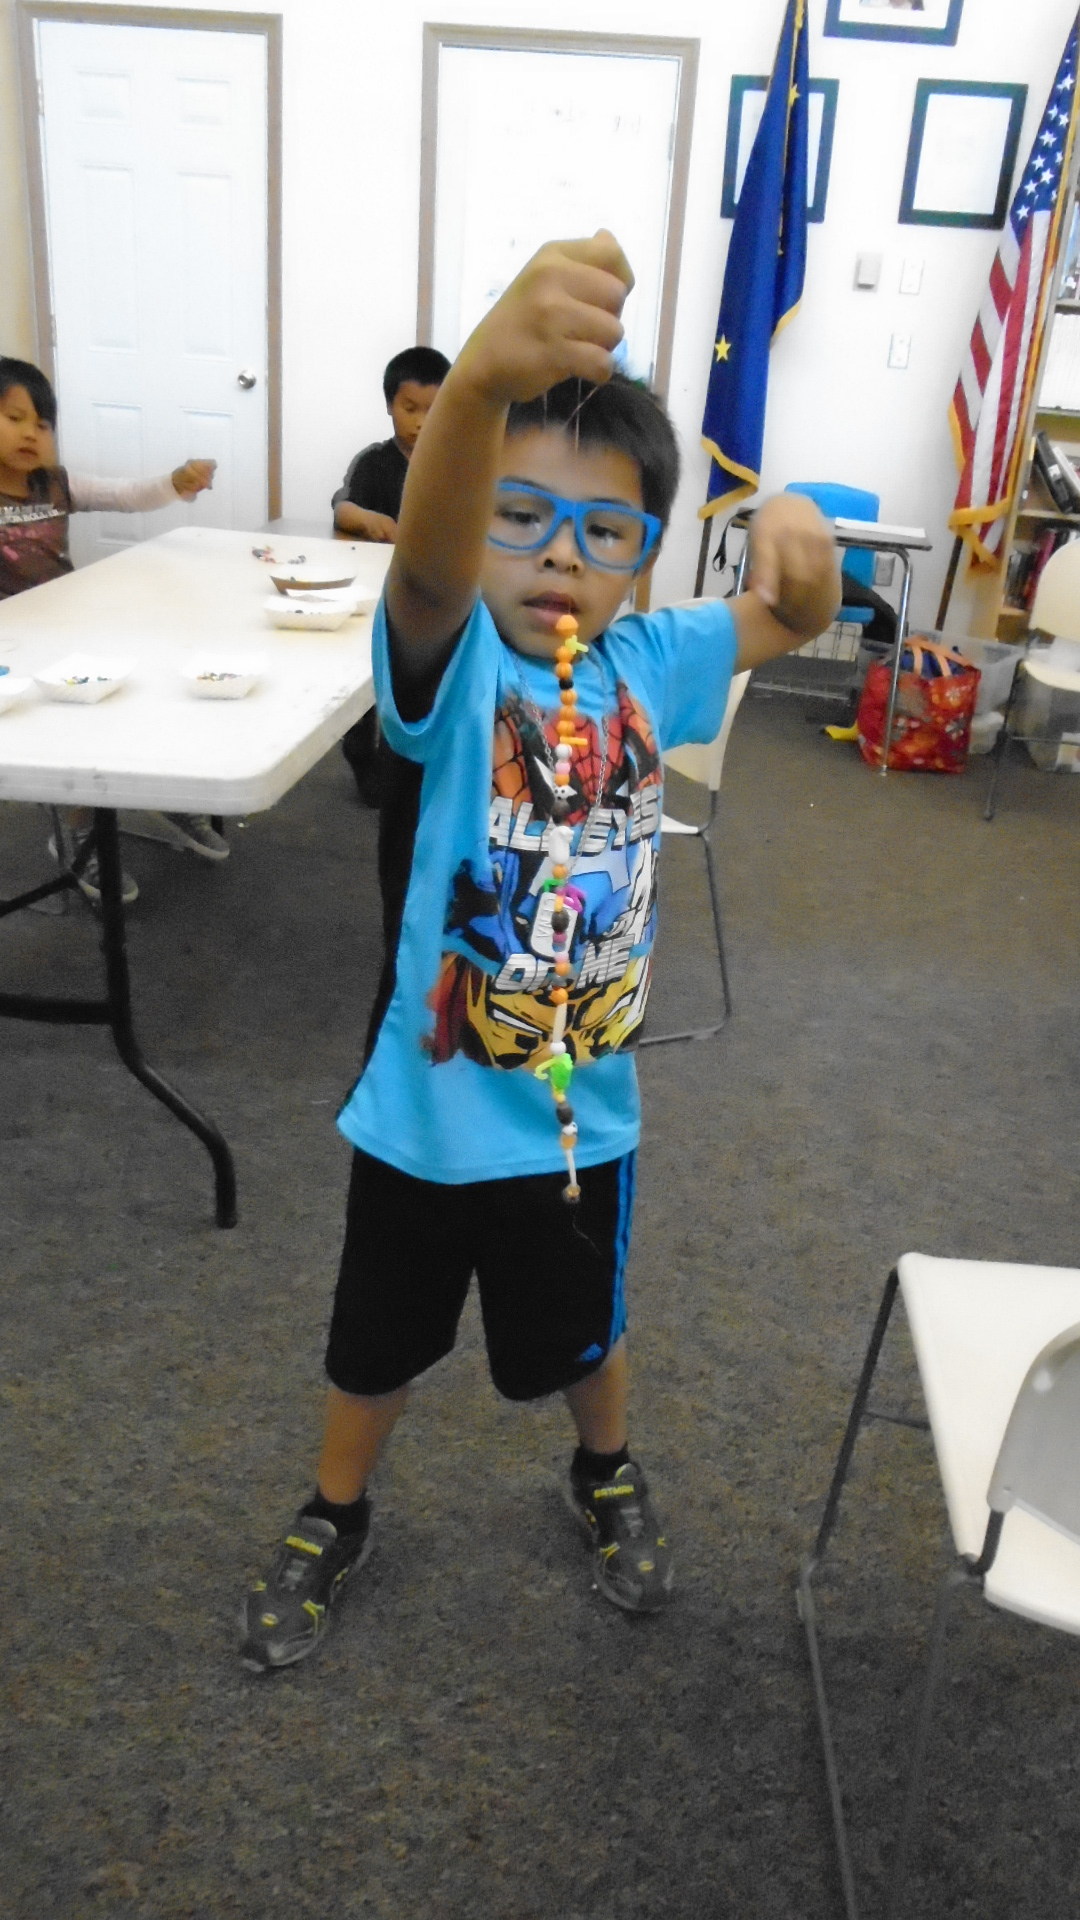 A student shows off his result of the beading instruction.